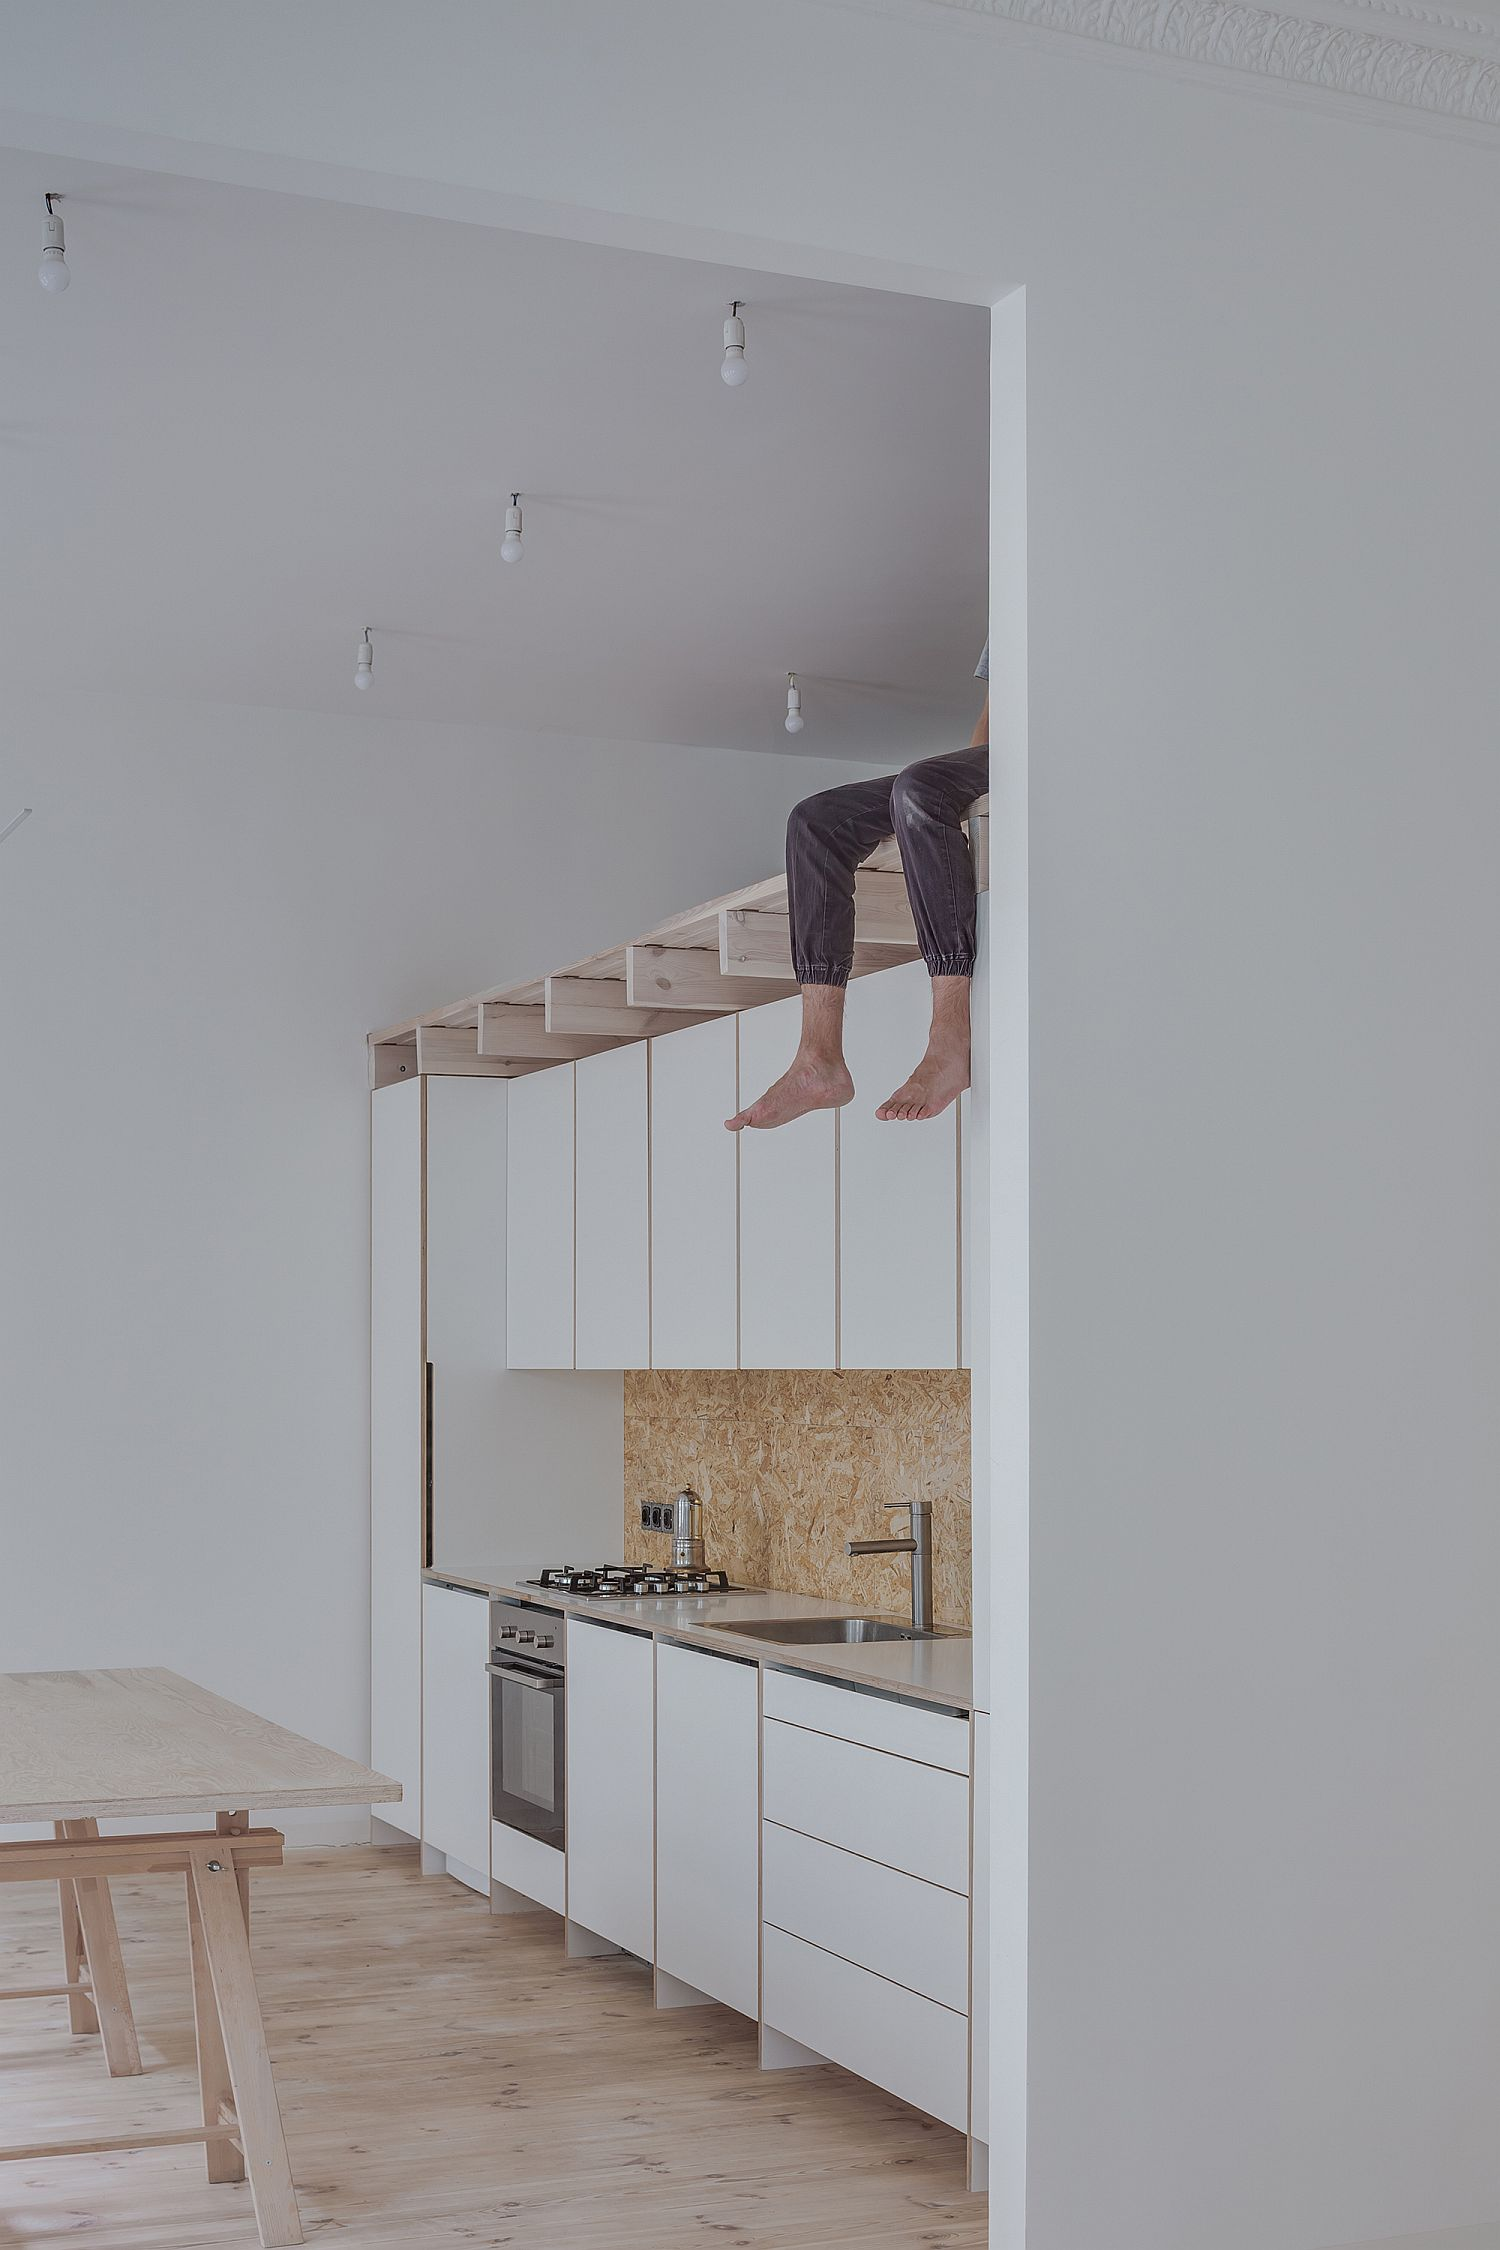 Custom-wall-for-kitchen-and-bathroom-with-space-above-for-storage